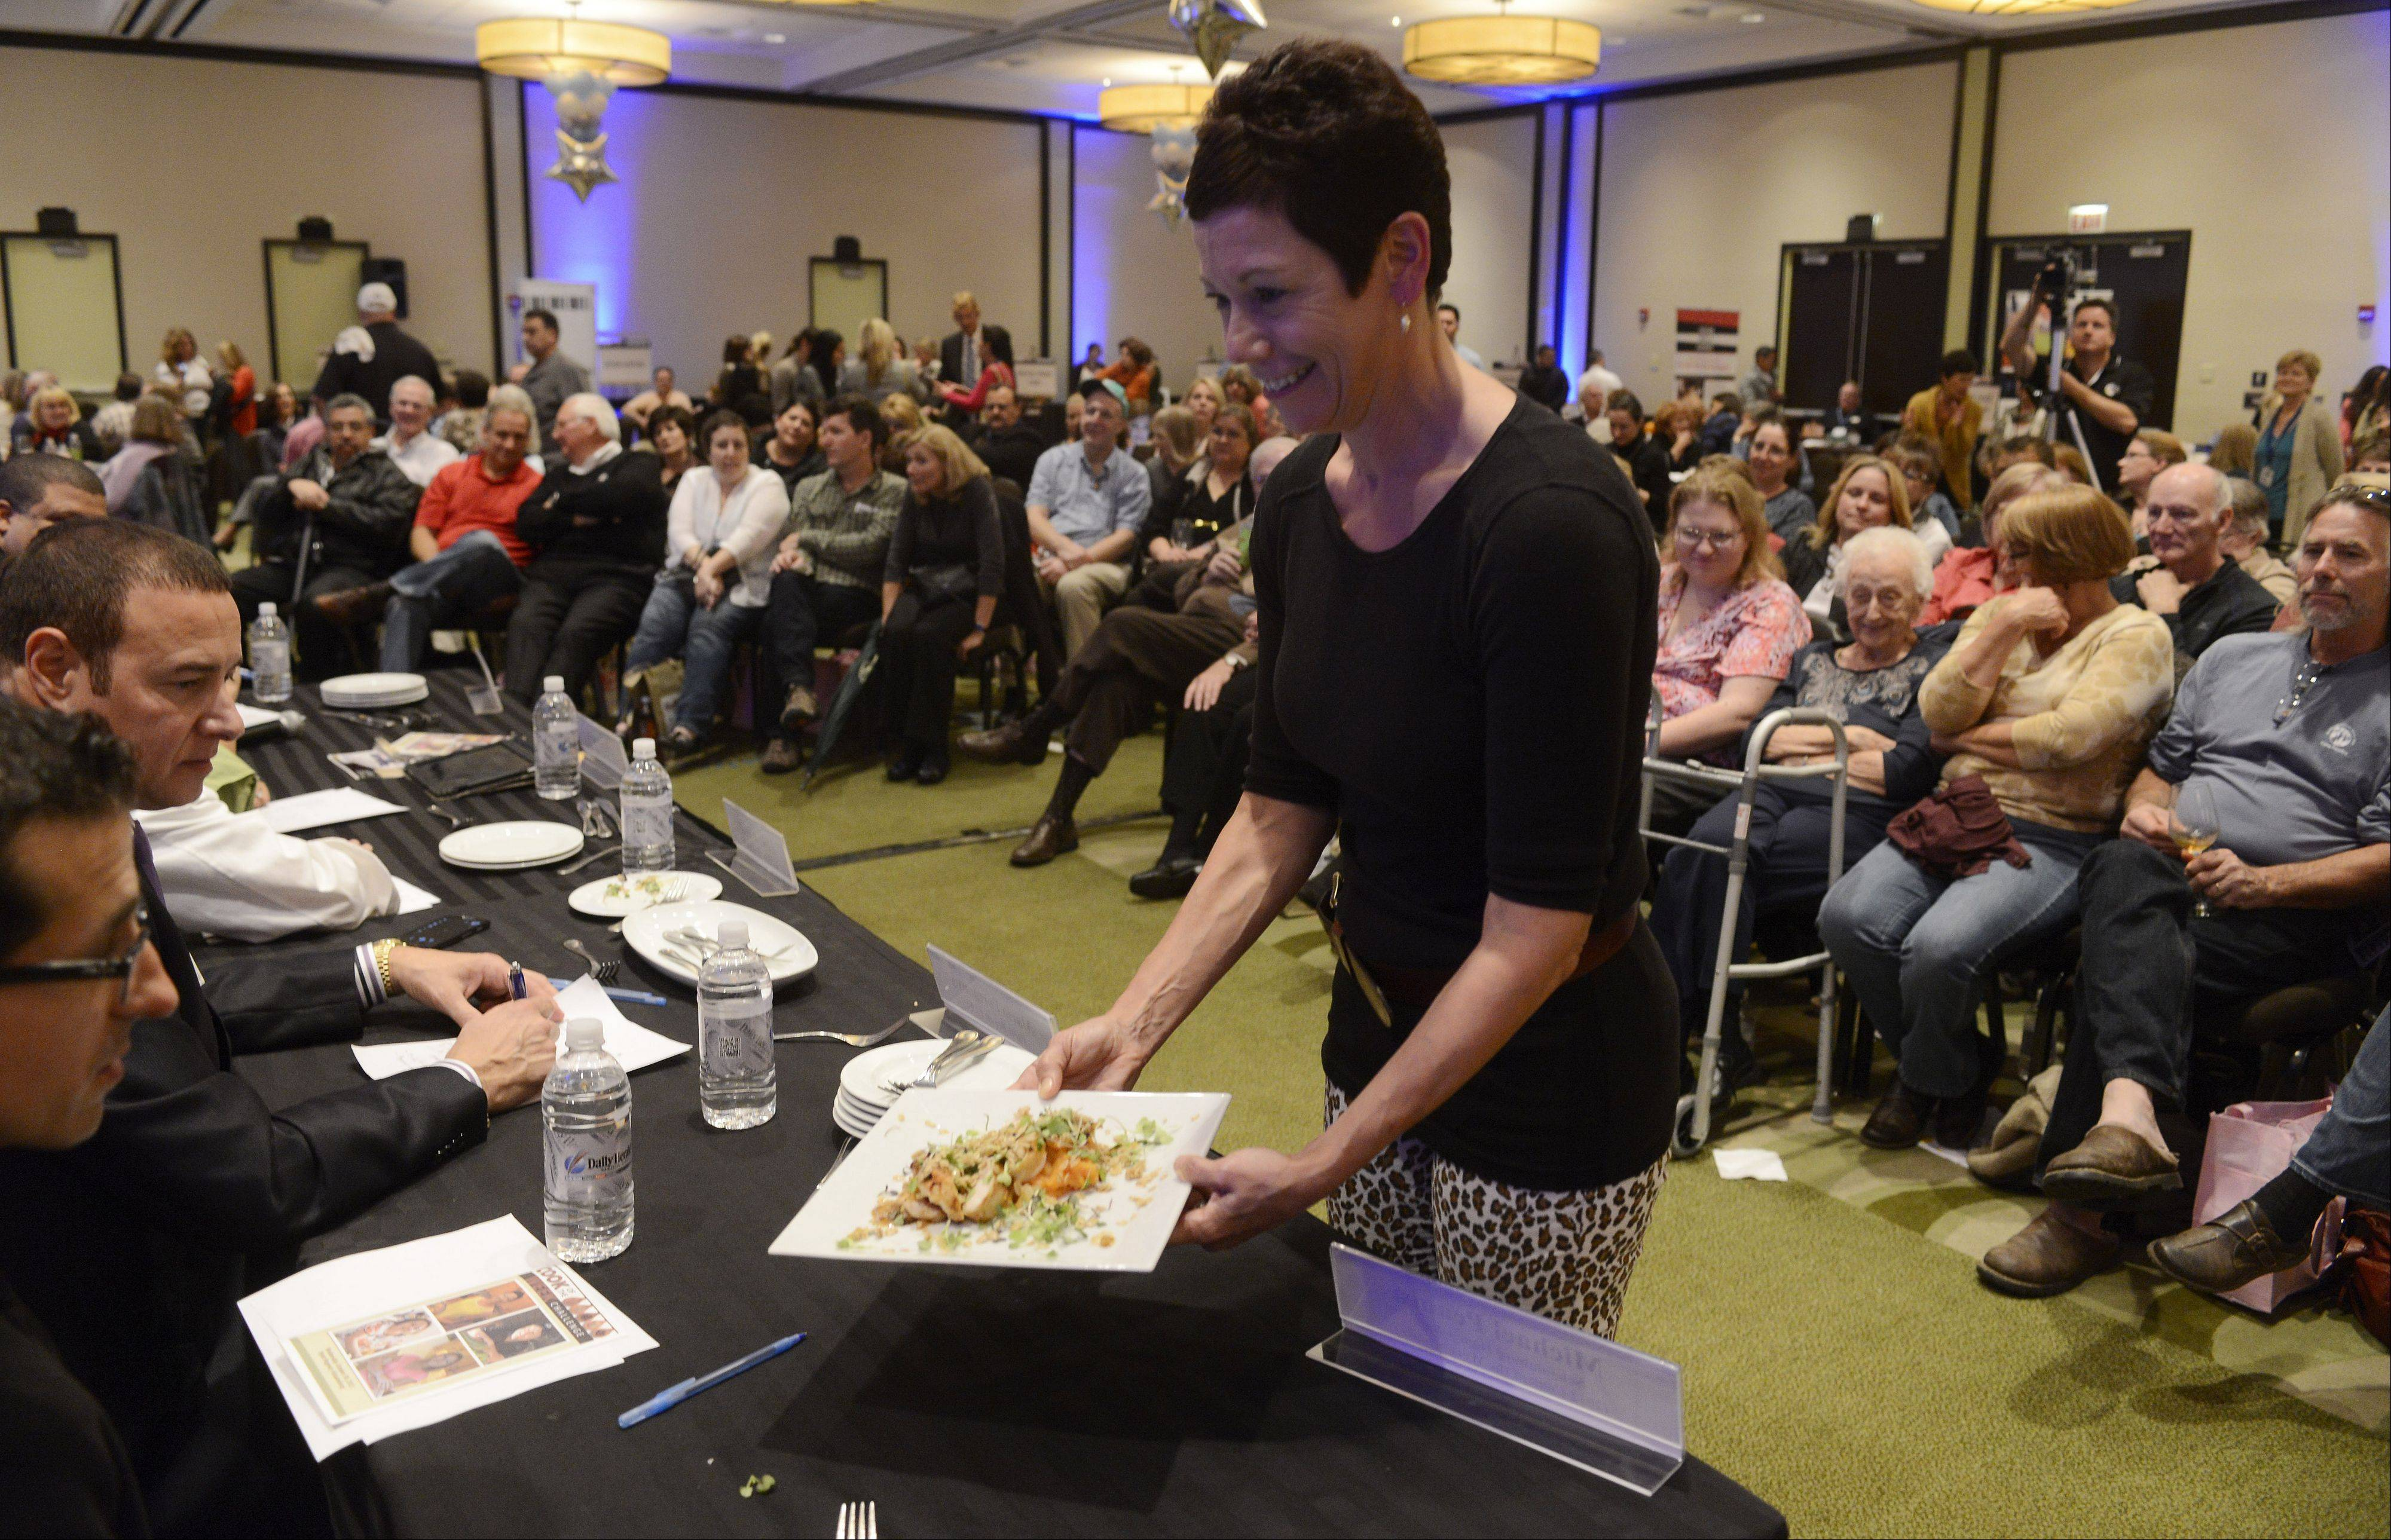 Lori Motyka of West Chicago presents her dish to the judges during the Daily Herald Cook of the Week Cookoff finals, held at the Hyatt Regency Schaumburg Wednesday.